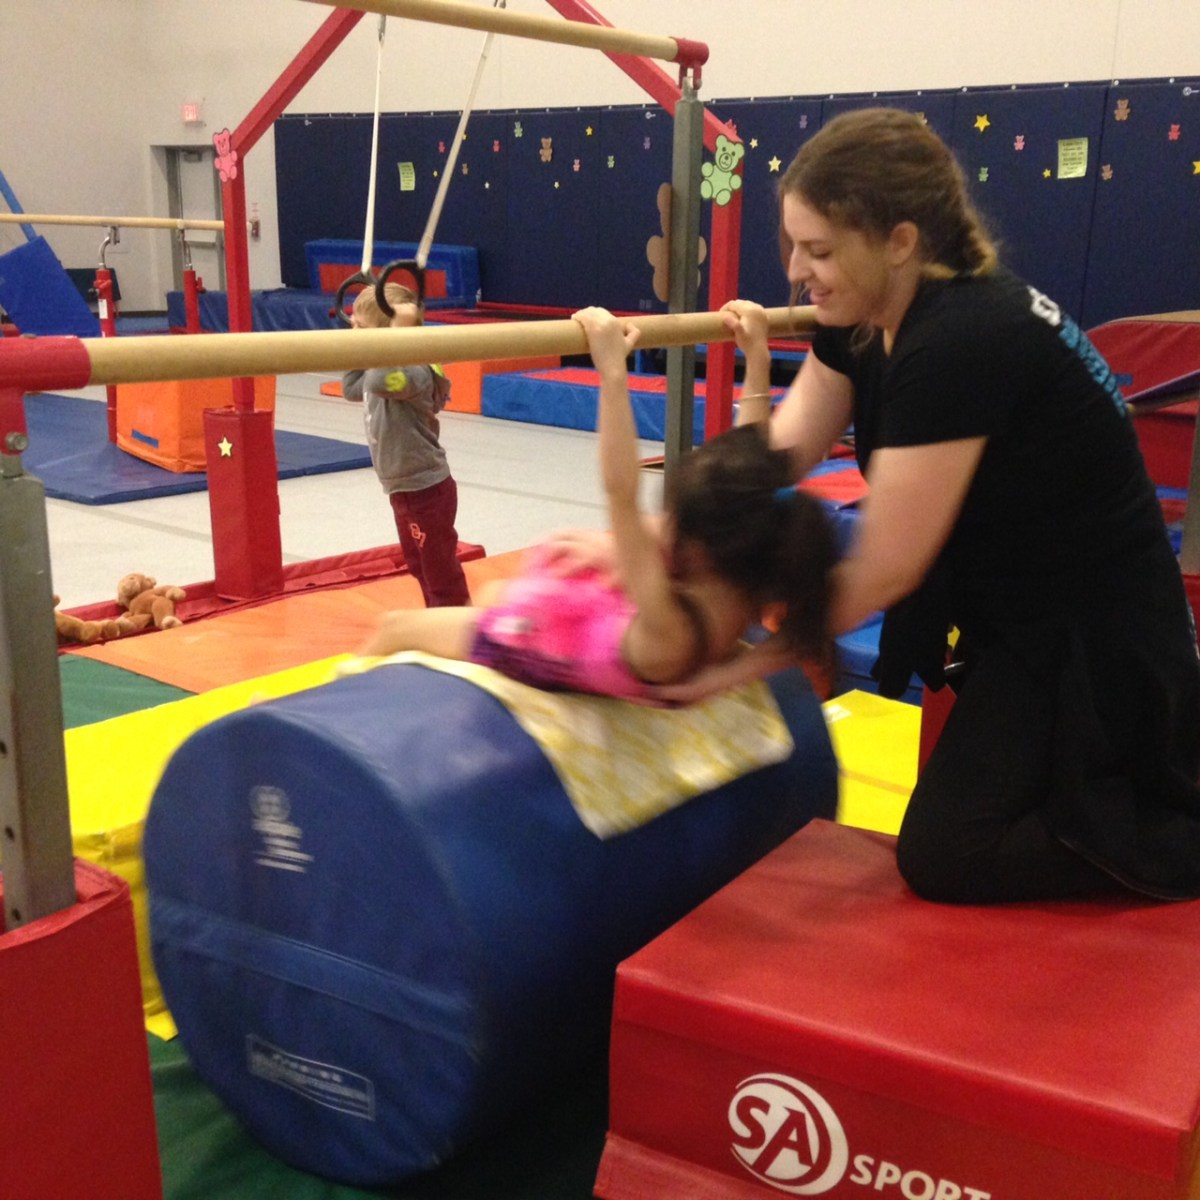 6 Creative Ideas for BARS - Preschool gymnastics!